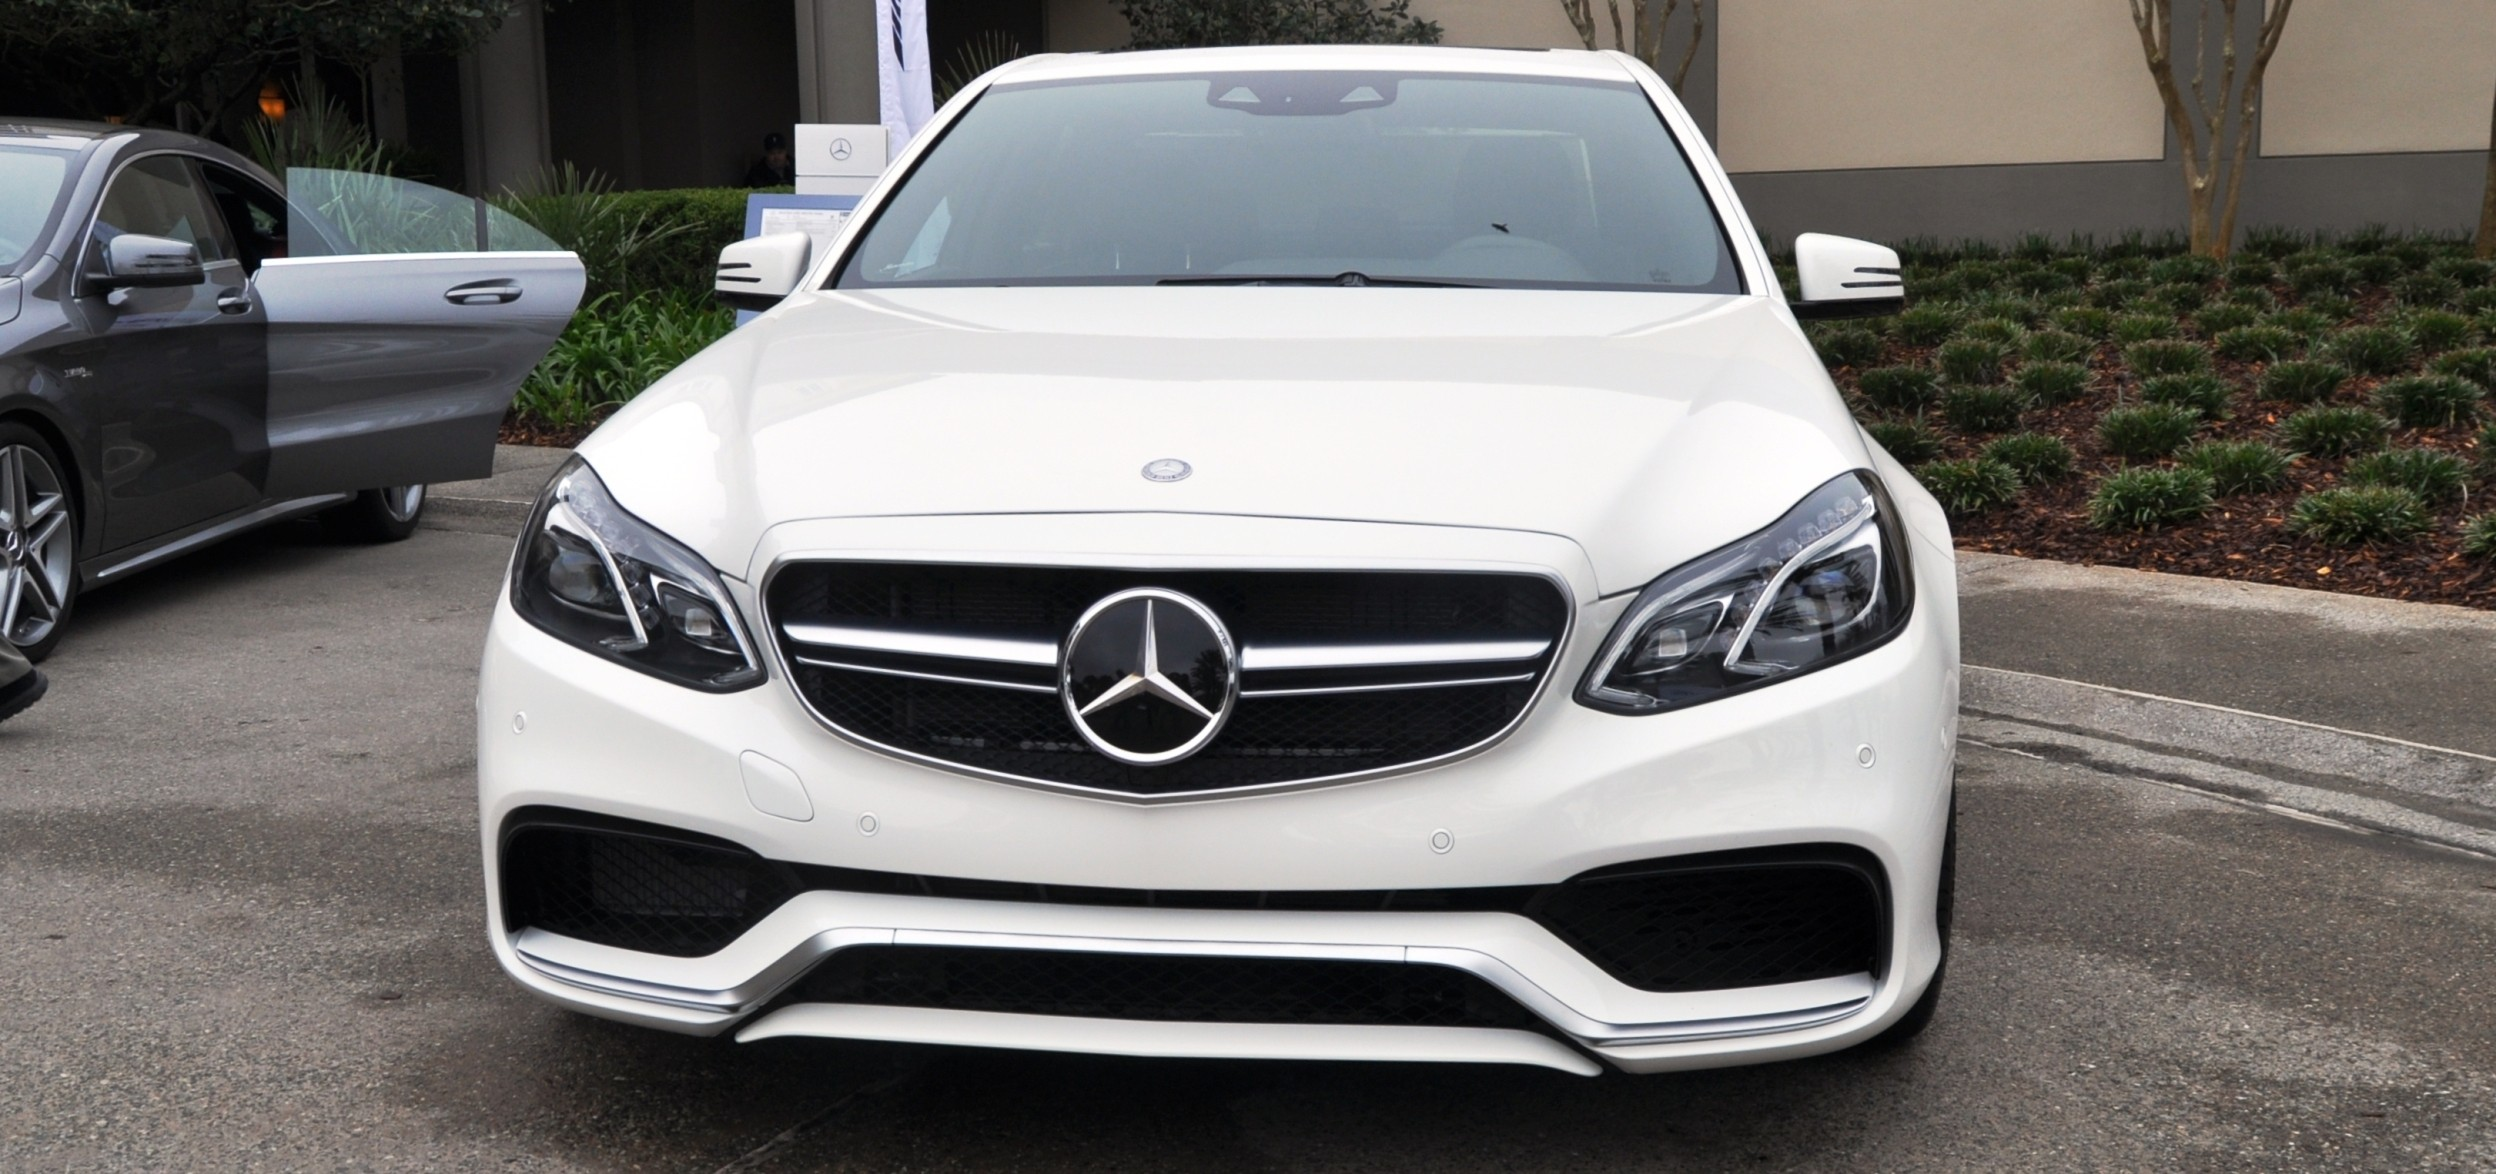 White Mercedes Benz New Car Release And Specs 2018 2019